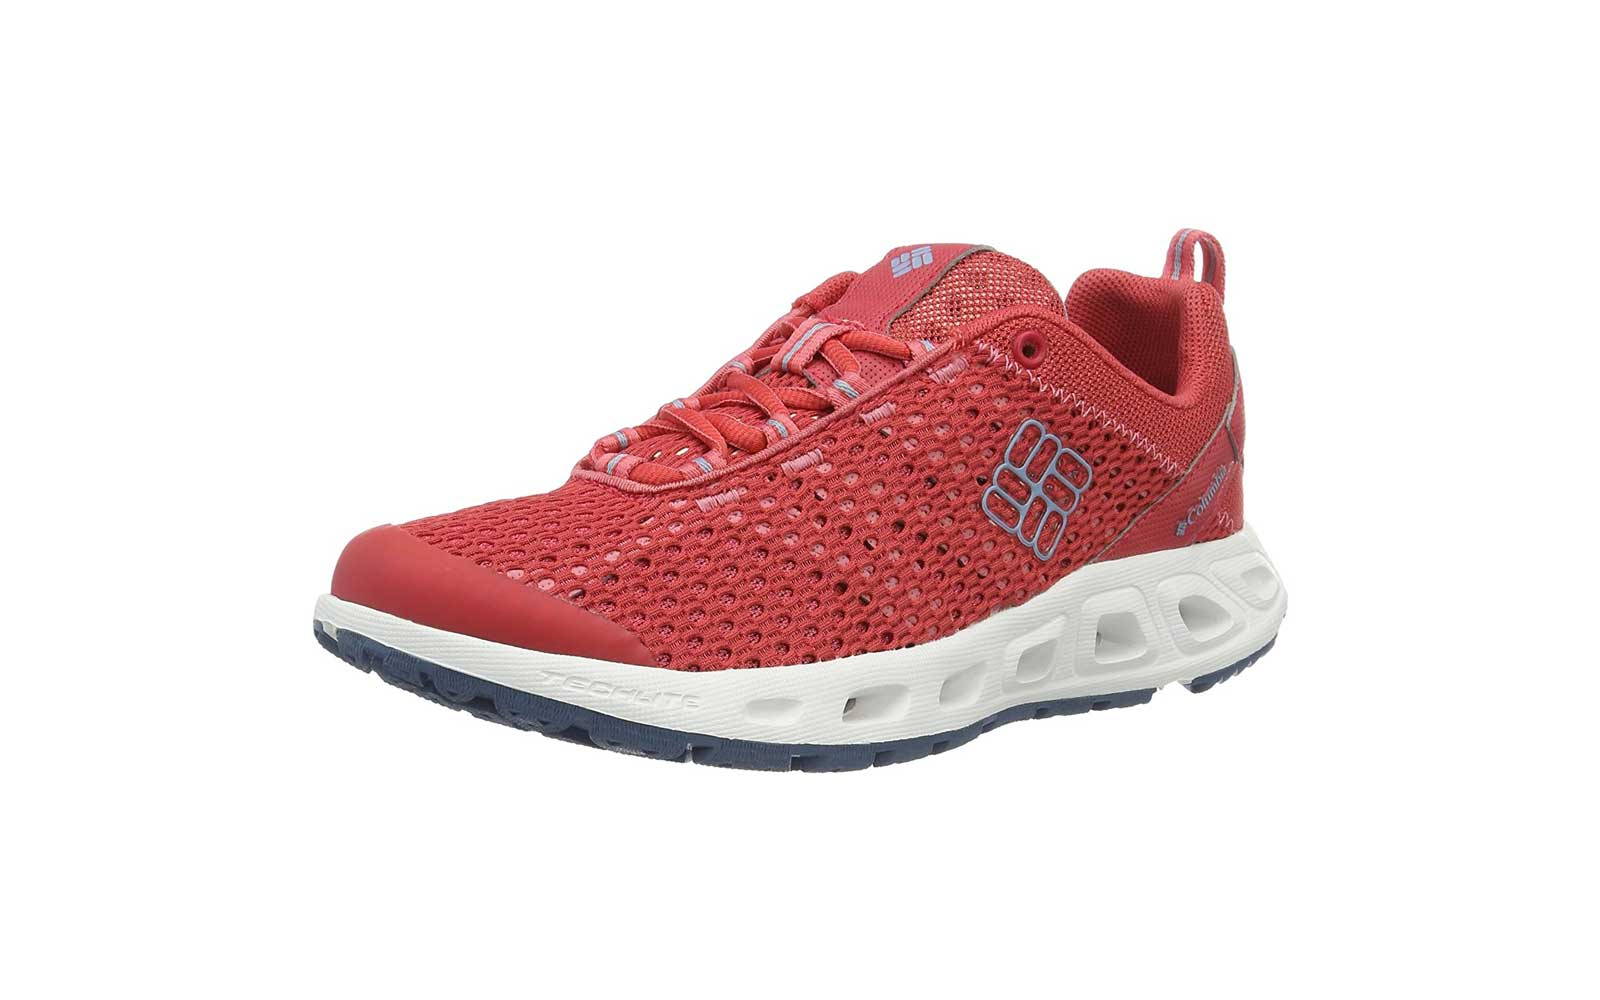 The Best Water Shoes for Women in 2019  00e710e7b